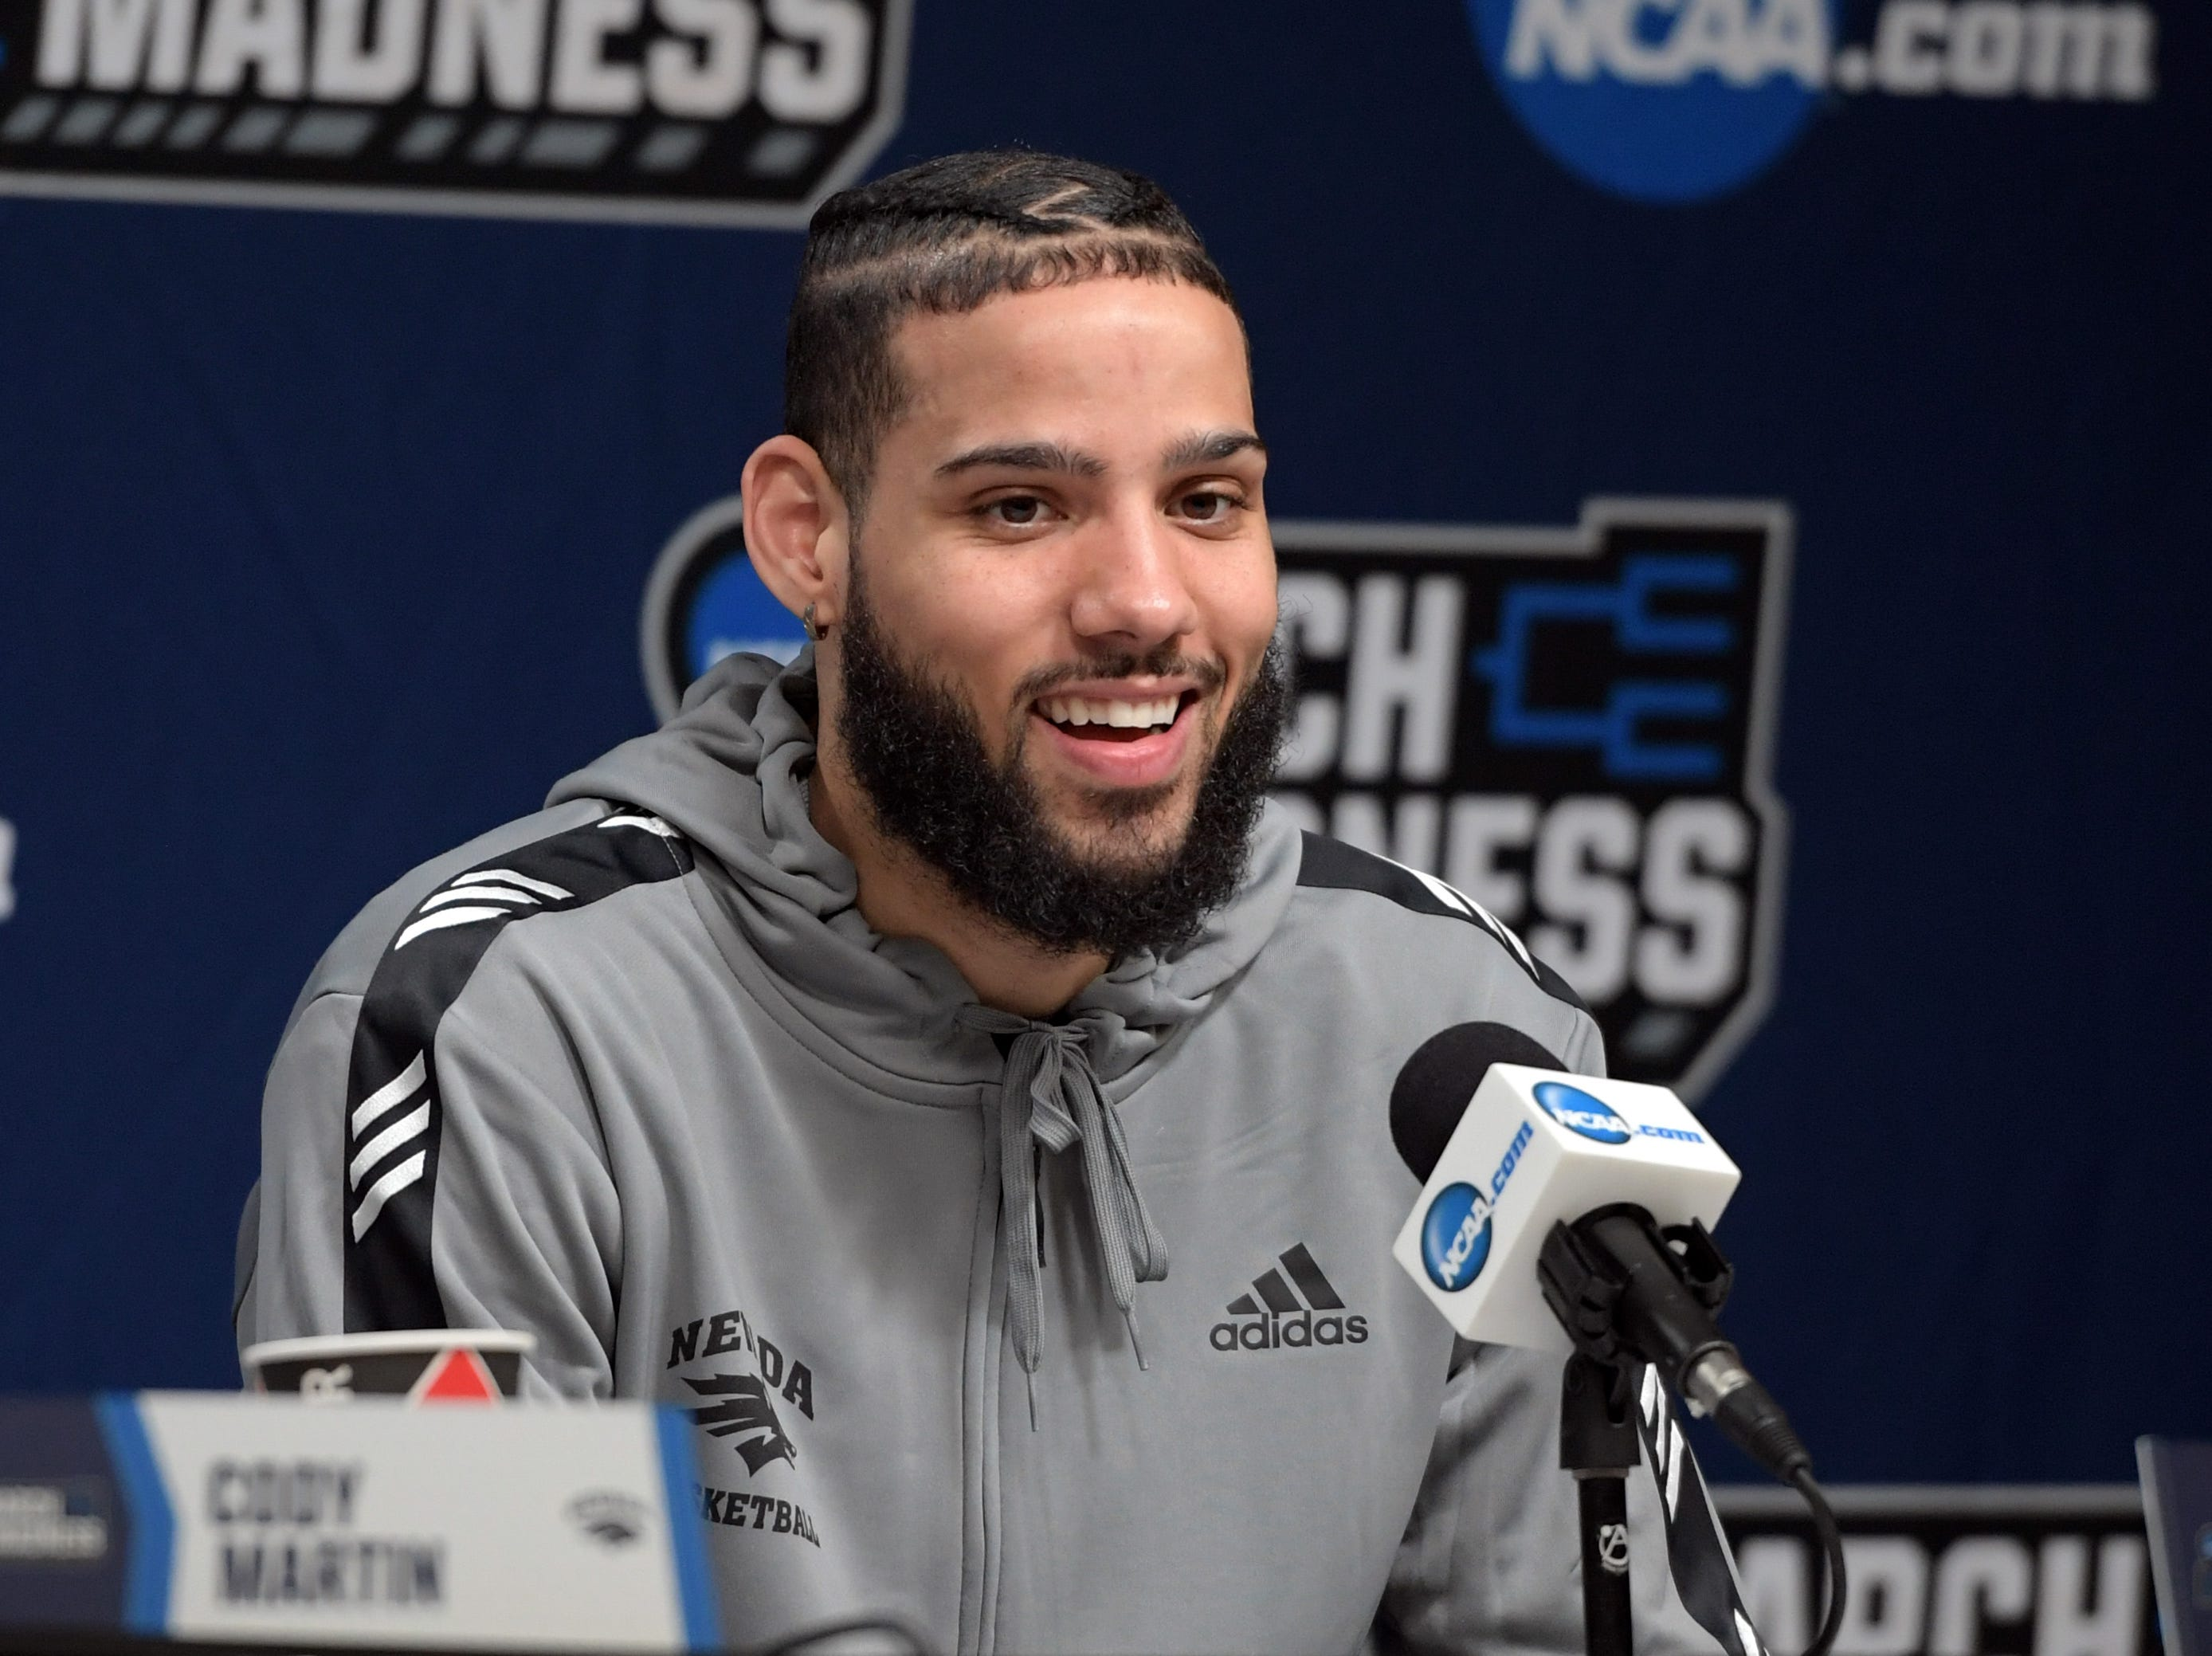 Mar 20, 2019; Des Moines, IA, USA; Nevada Wolf Pack forward Caleb Martin (10) speaks in a press conference during practice before the first round of the 2019 NCAA Tournament at Wells Fargo Arena. Mandatory Credit: Steven Branscombe-USA TODAY Sports